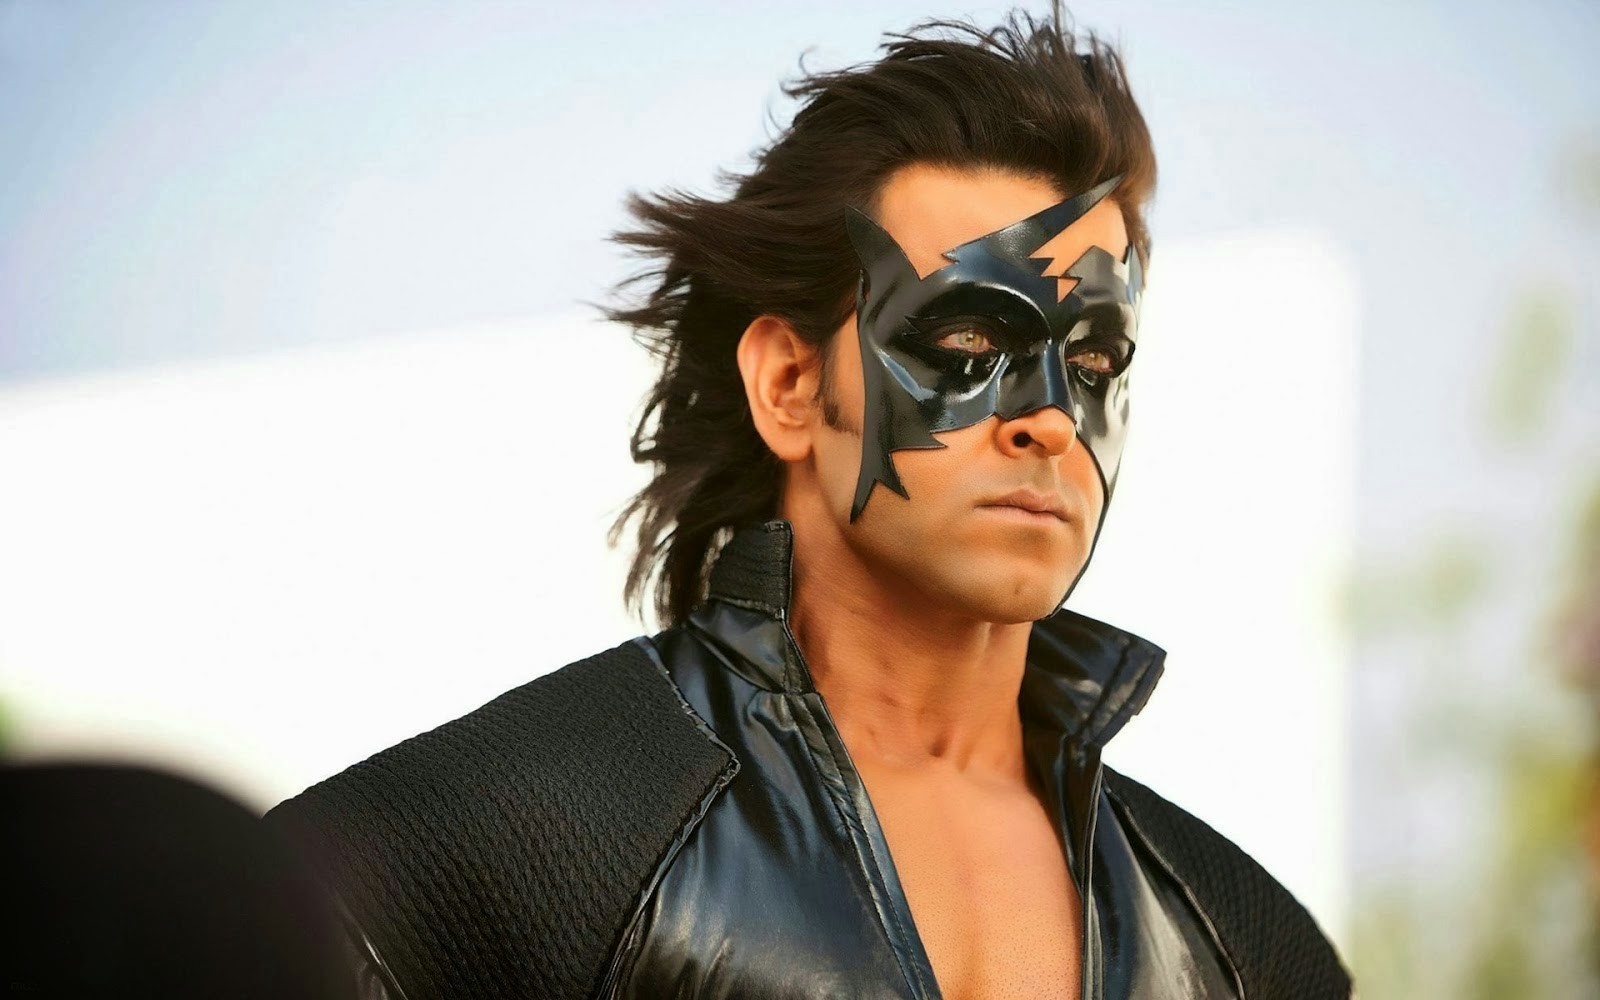 Hrithik Roshan Hot HD Wallpapers 1080p | Salman Khan HD Wallpaper